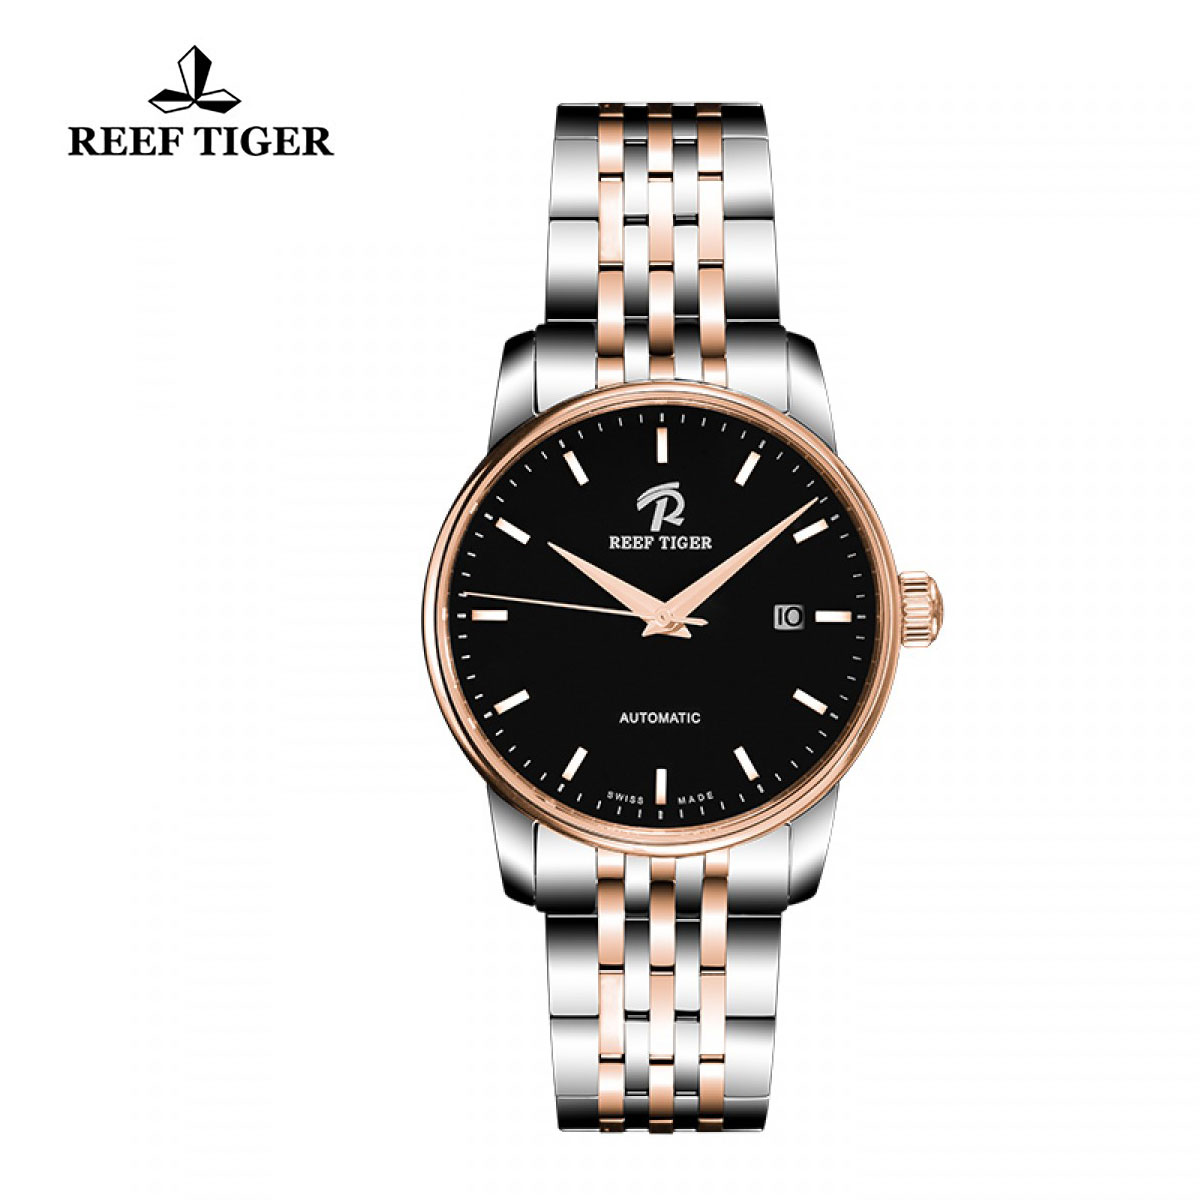 Reef Tiger Classic Fusion Dress Watch with Date Black Dial Two Tone Watch RGA810-TBT